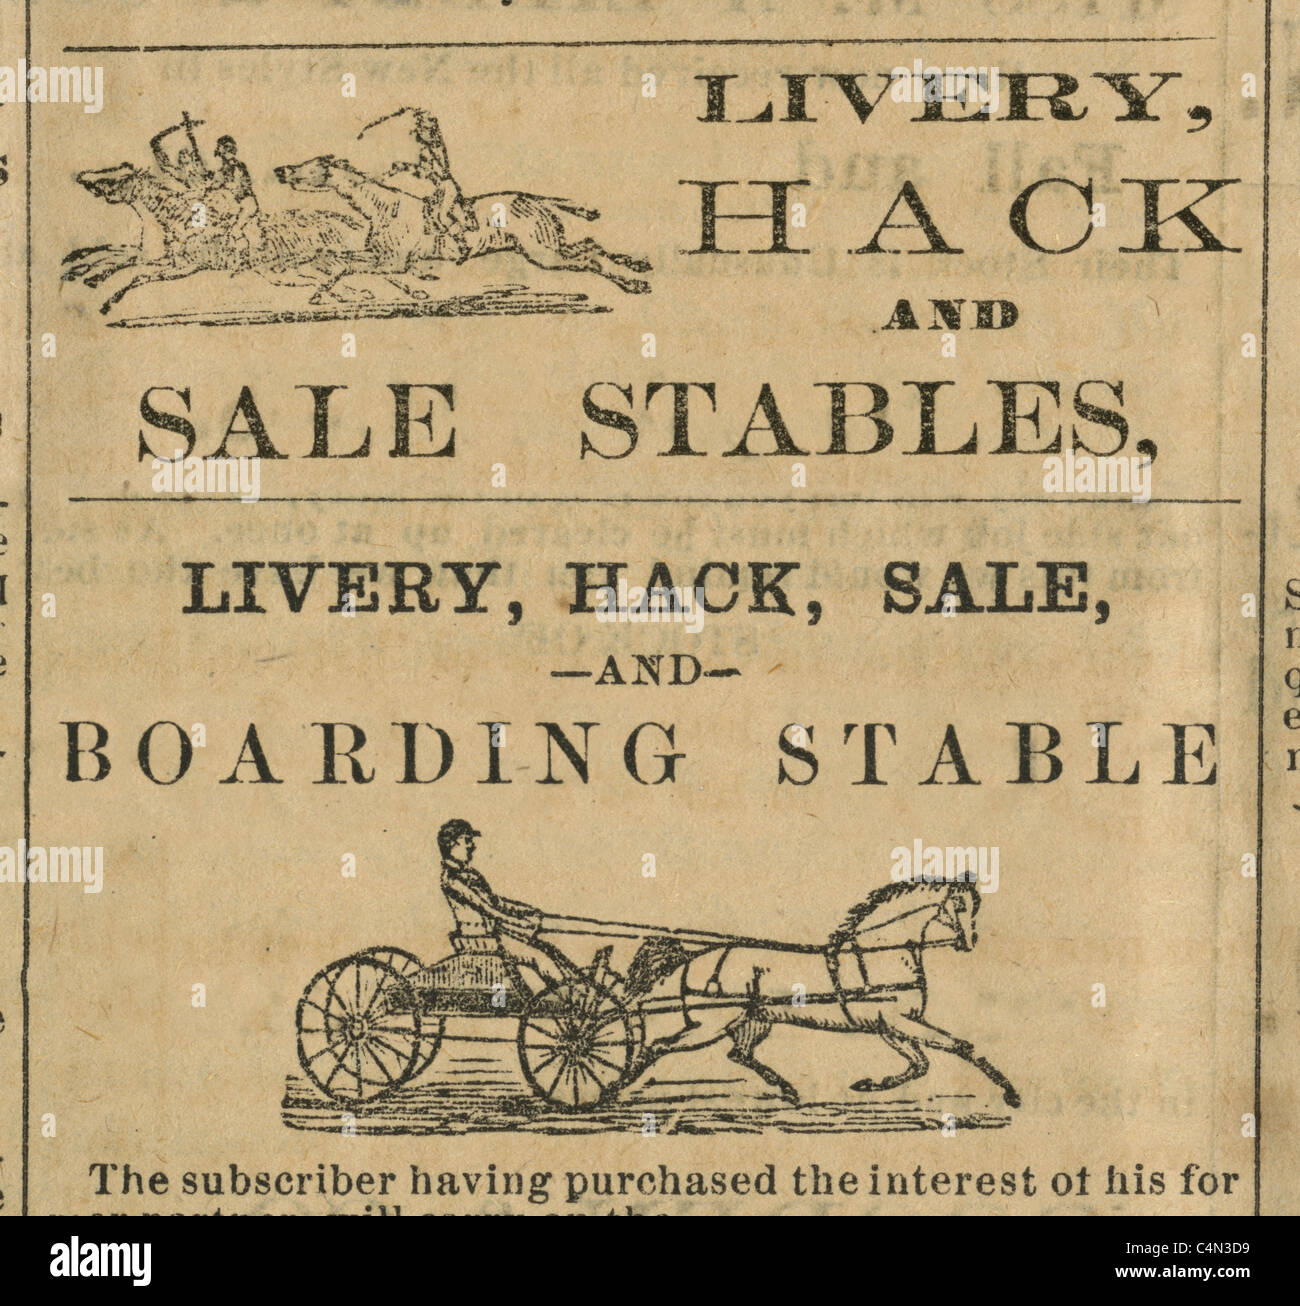 Detail from two 1875 engravings of Livery Hack Stables advertisements from the Kennebec Reporter of Gardiner, Maine, - Stock Image